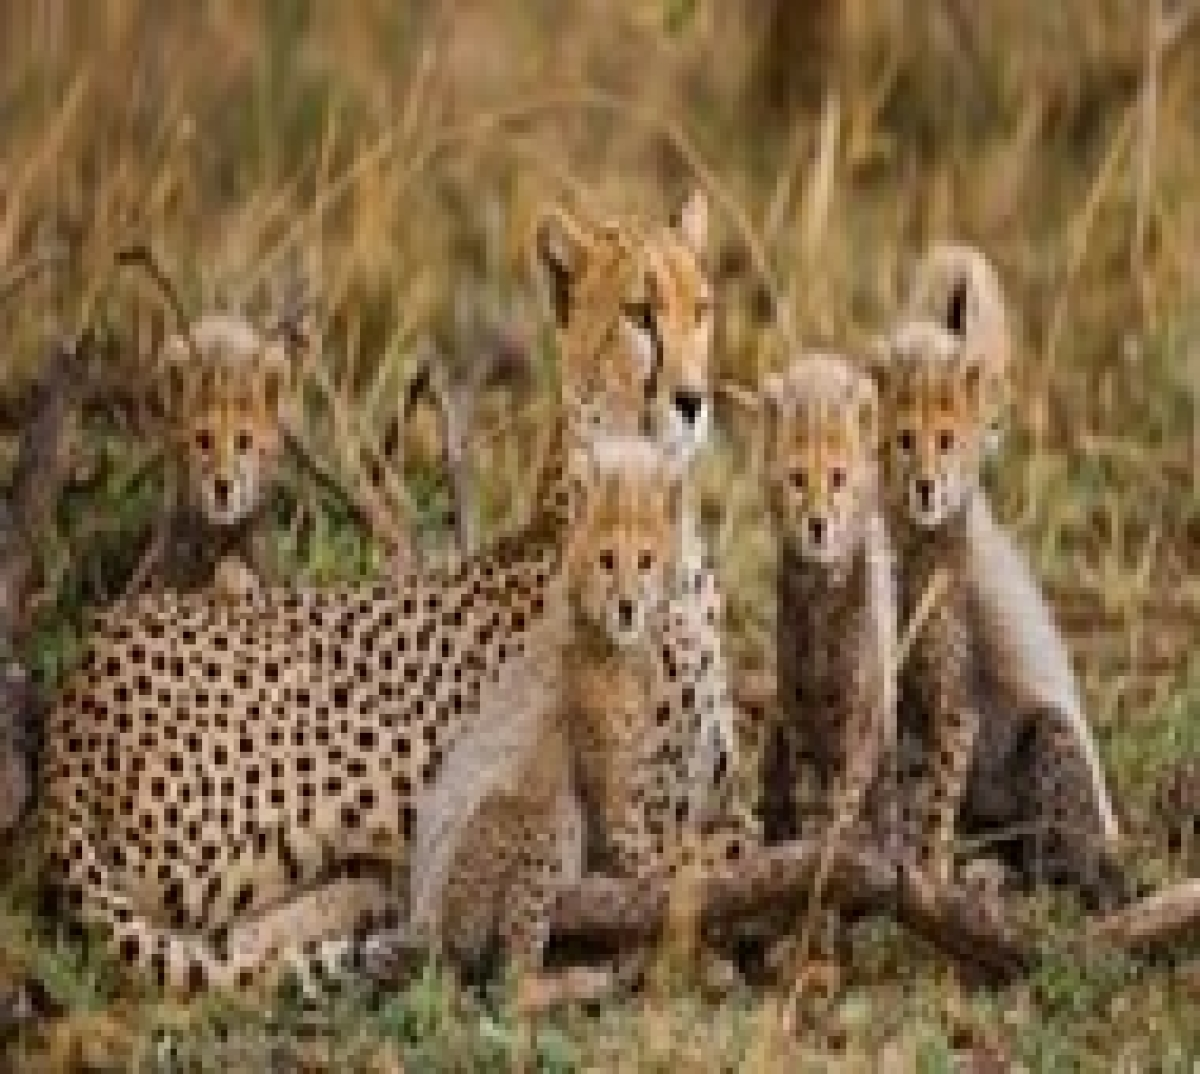 Cheetah numbers may be lower than estimated